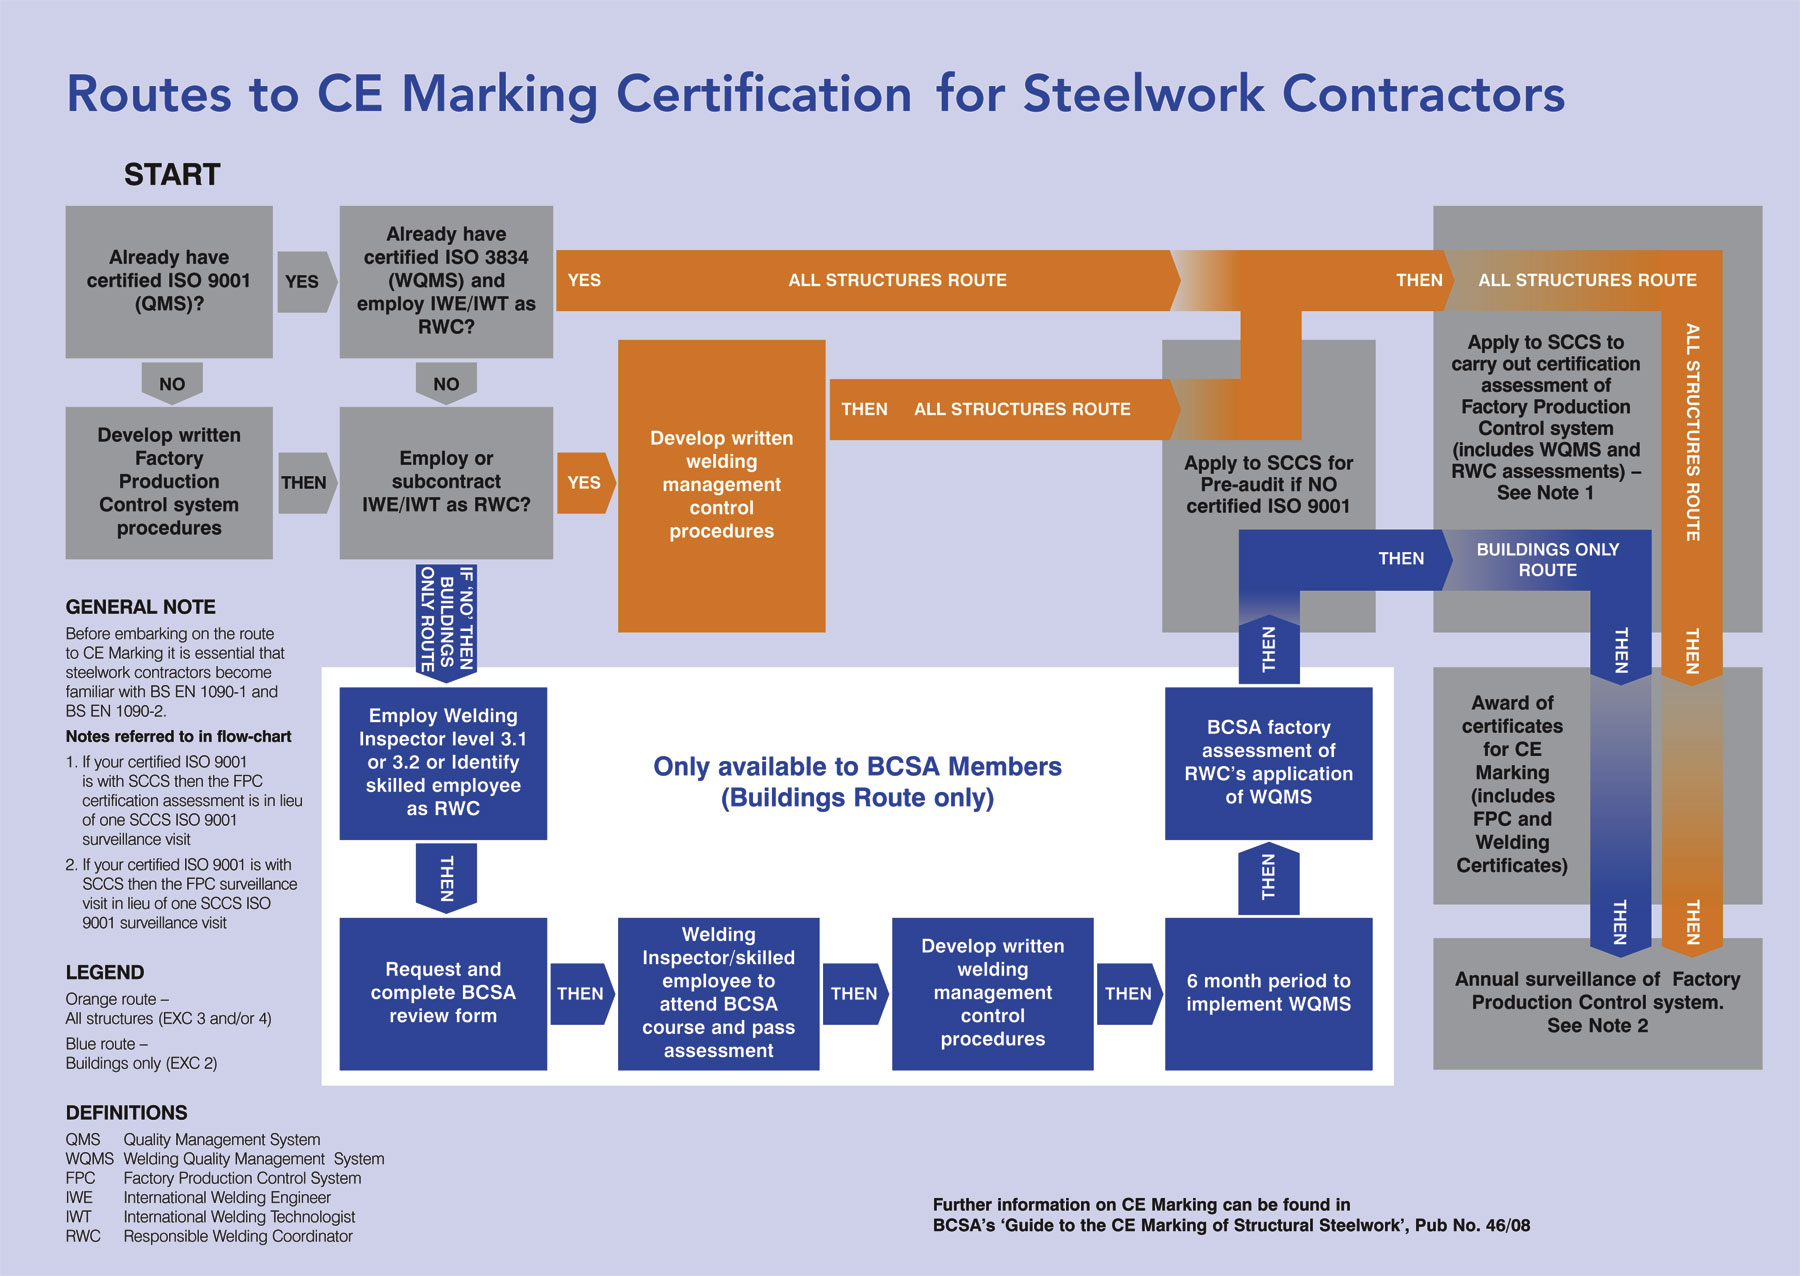 This way to CE Marking